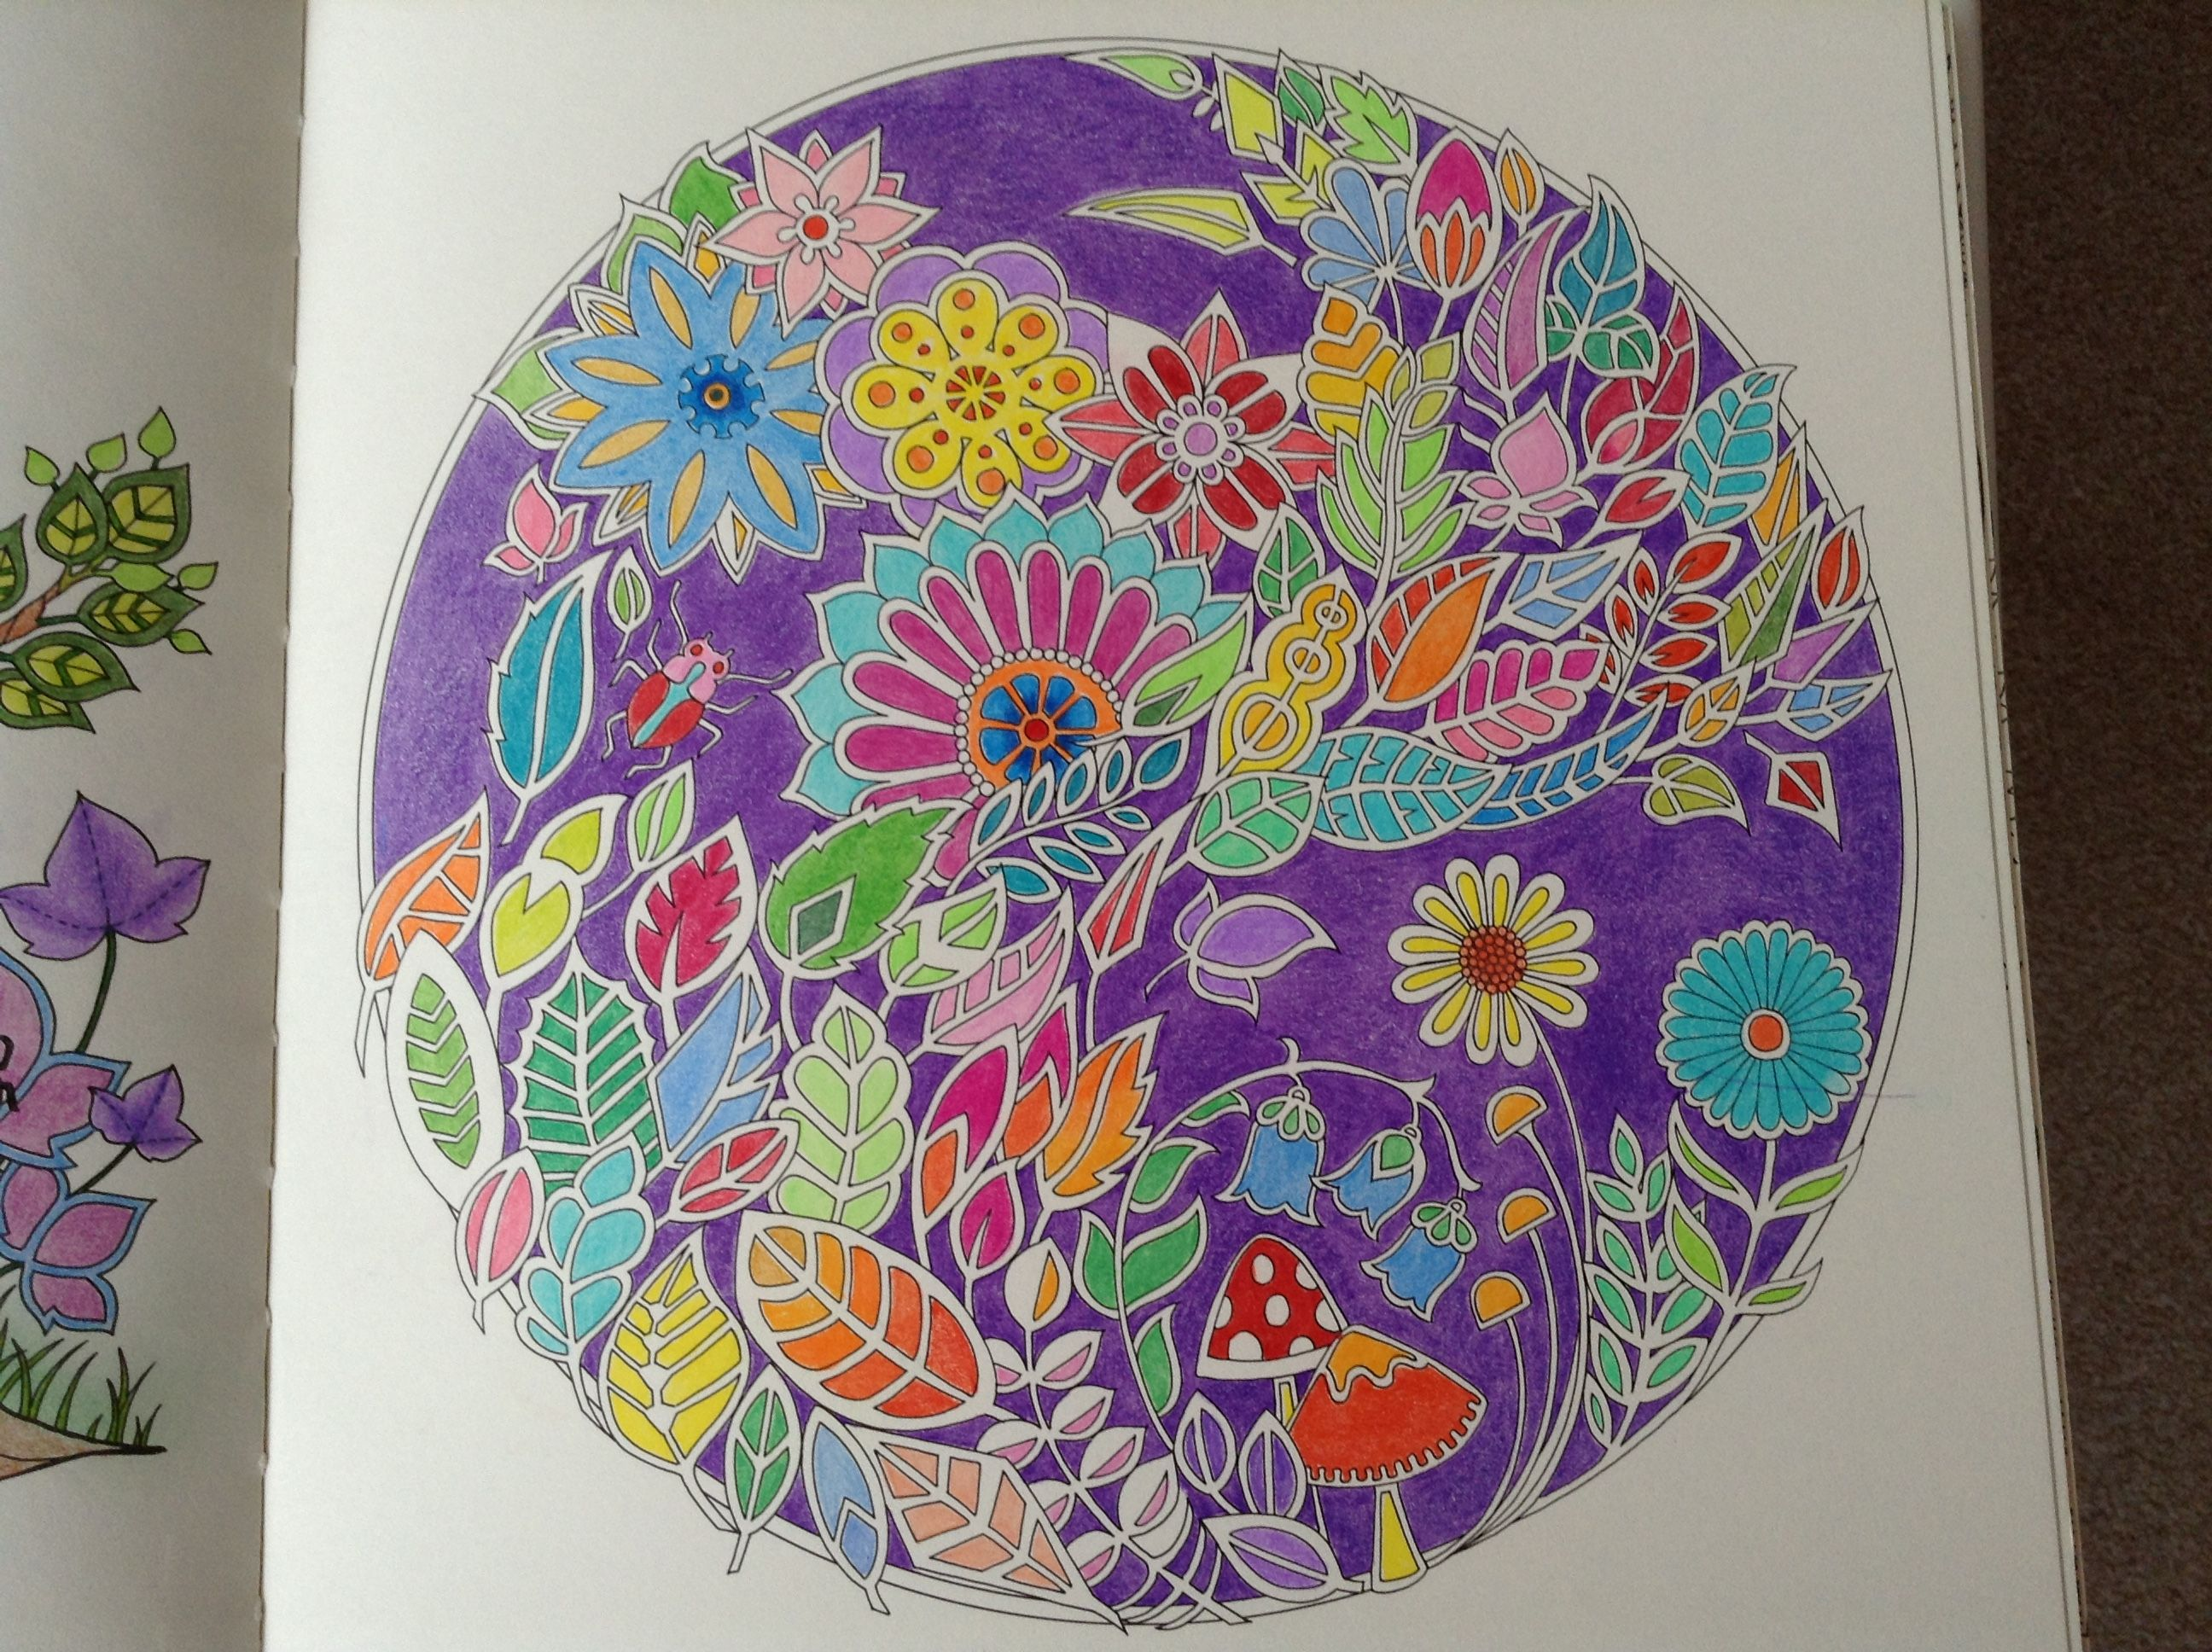 Enchanted Forest By Johanna Basford I Only Used Prismacolor Pencils On This Coloured